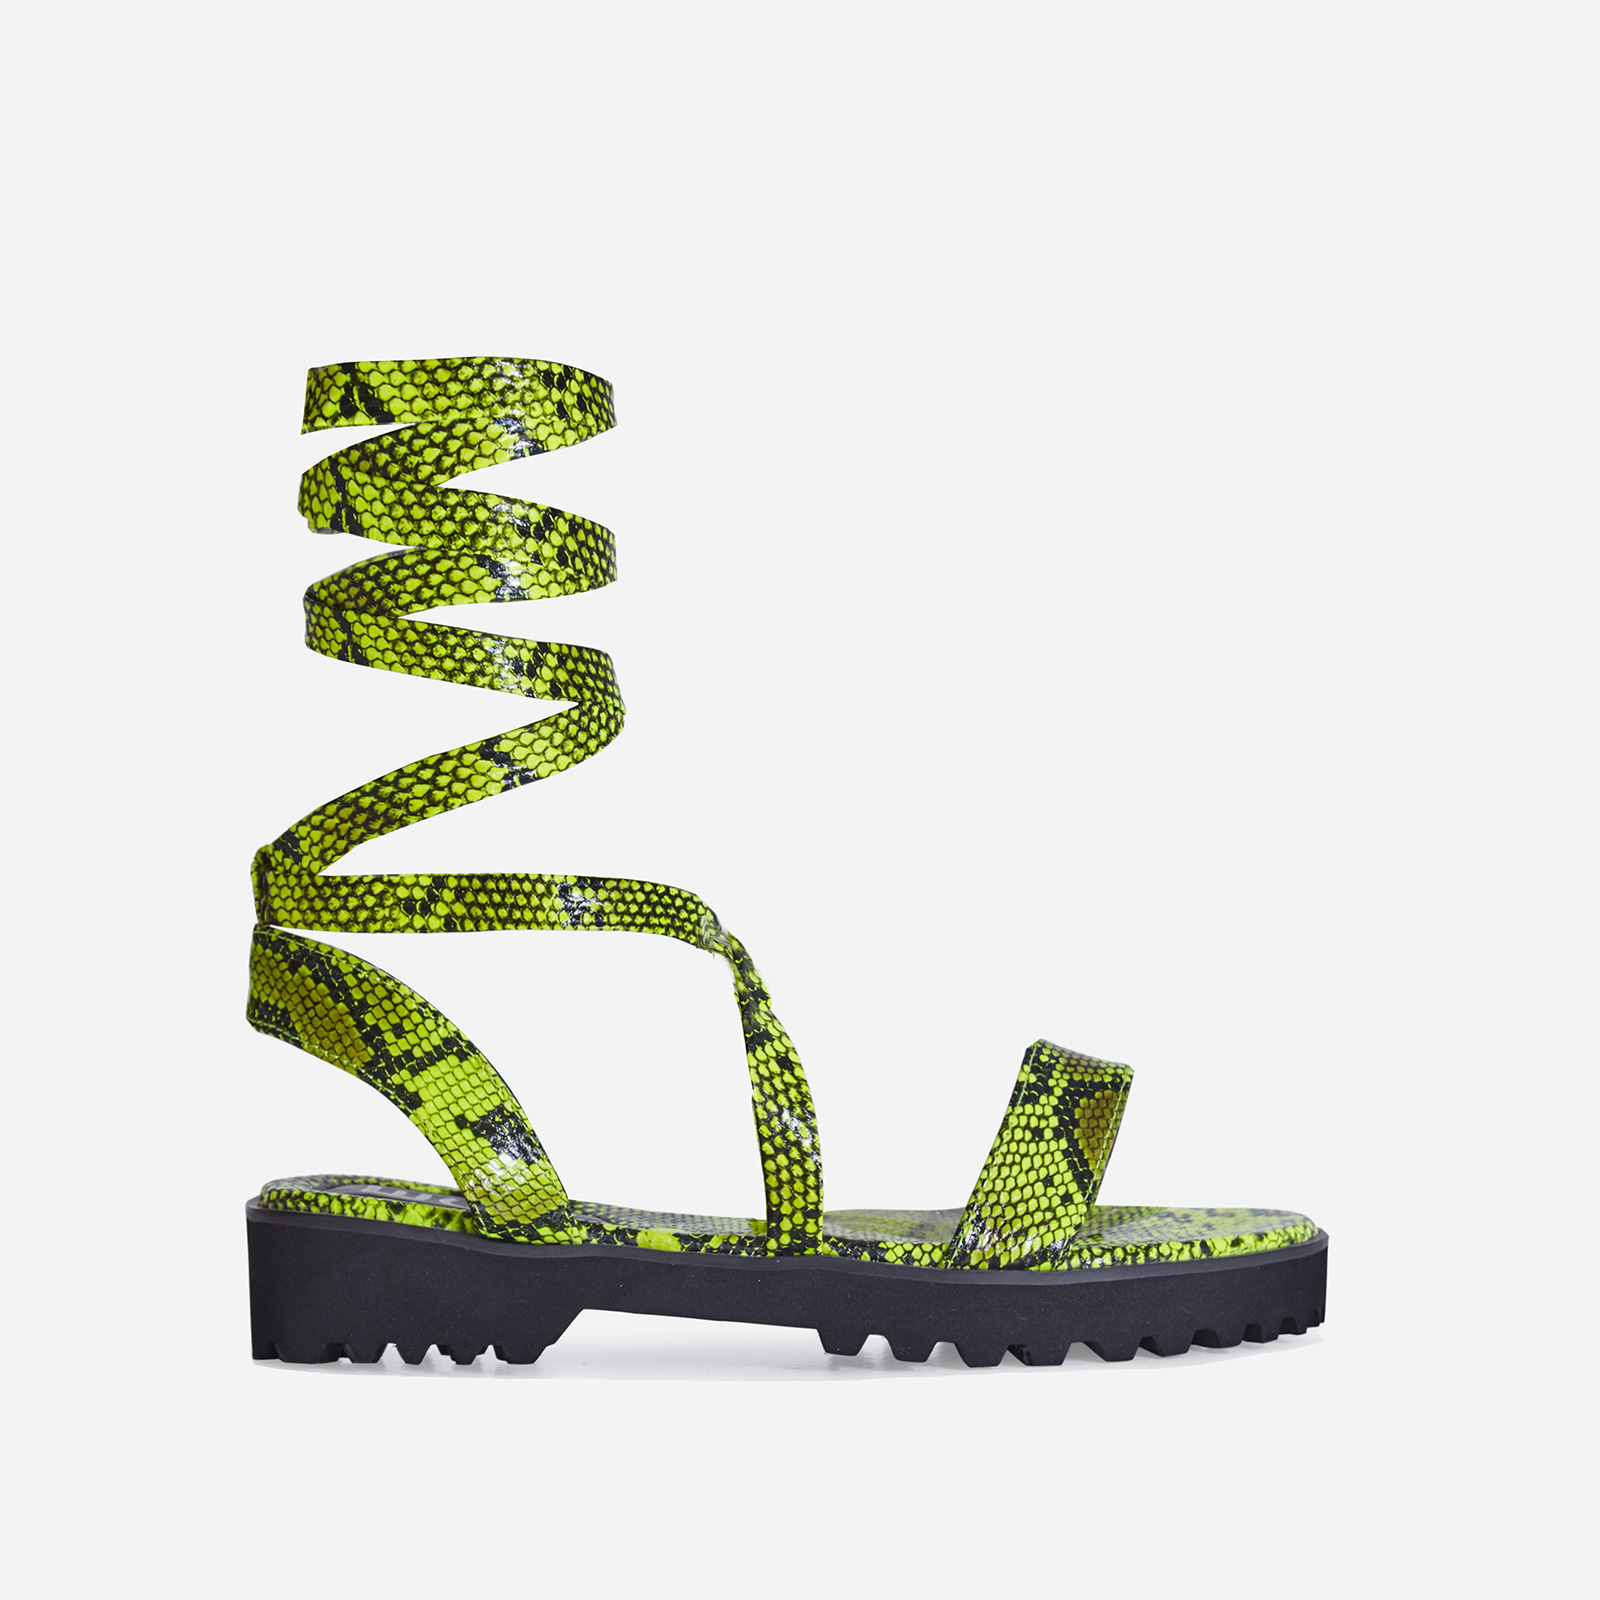 Larkin Lace Up Flat Sandal In Neon Yellow Snake Print Faux Leather